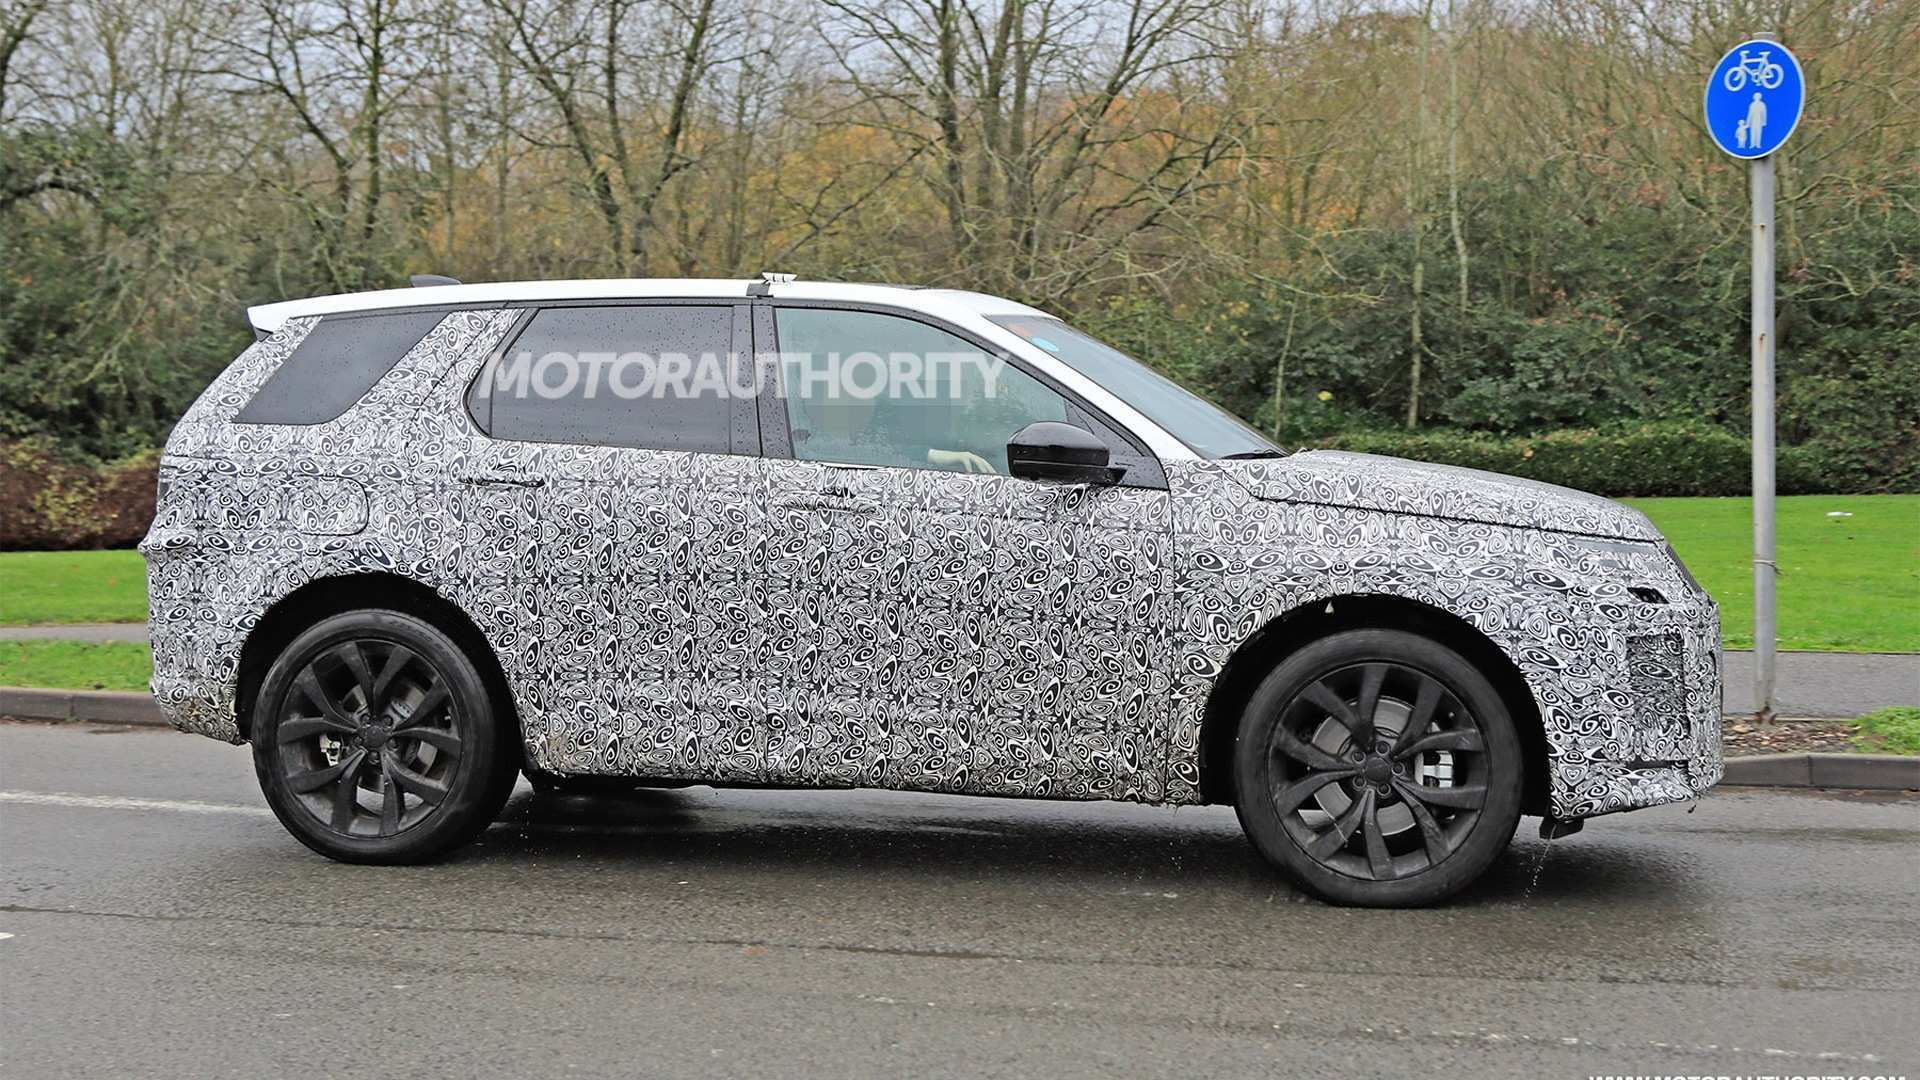 38 New 2020 Land Rover Discovery Sport Images